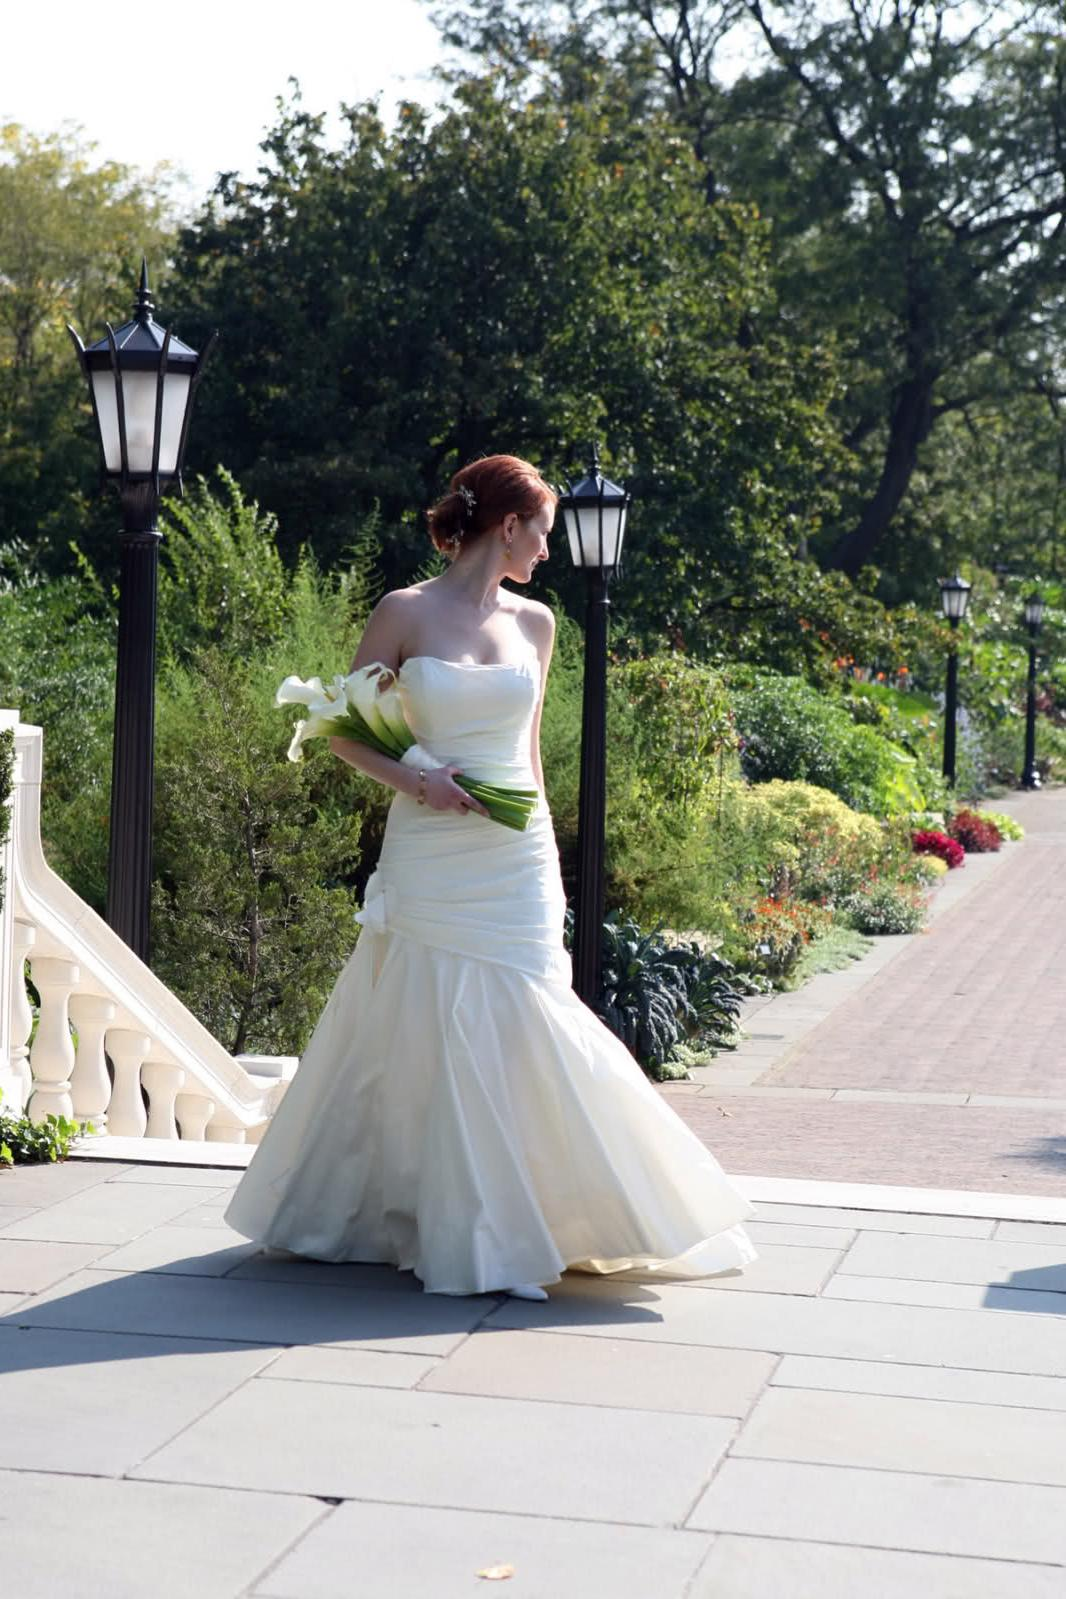 Chee 39 S Blog Dallas Courthouse: simple country wedding dress ideas